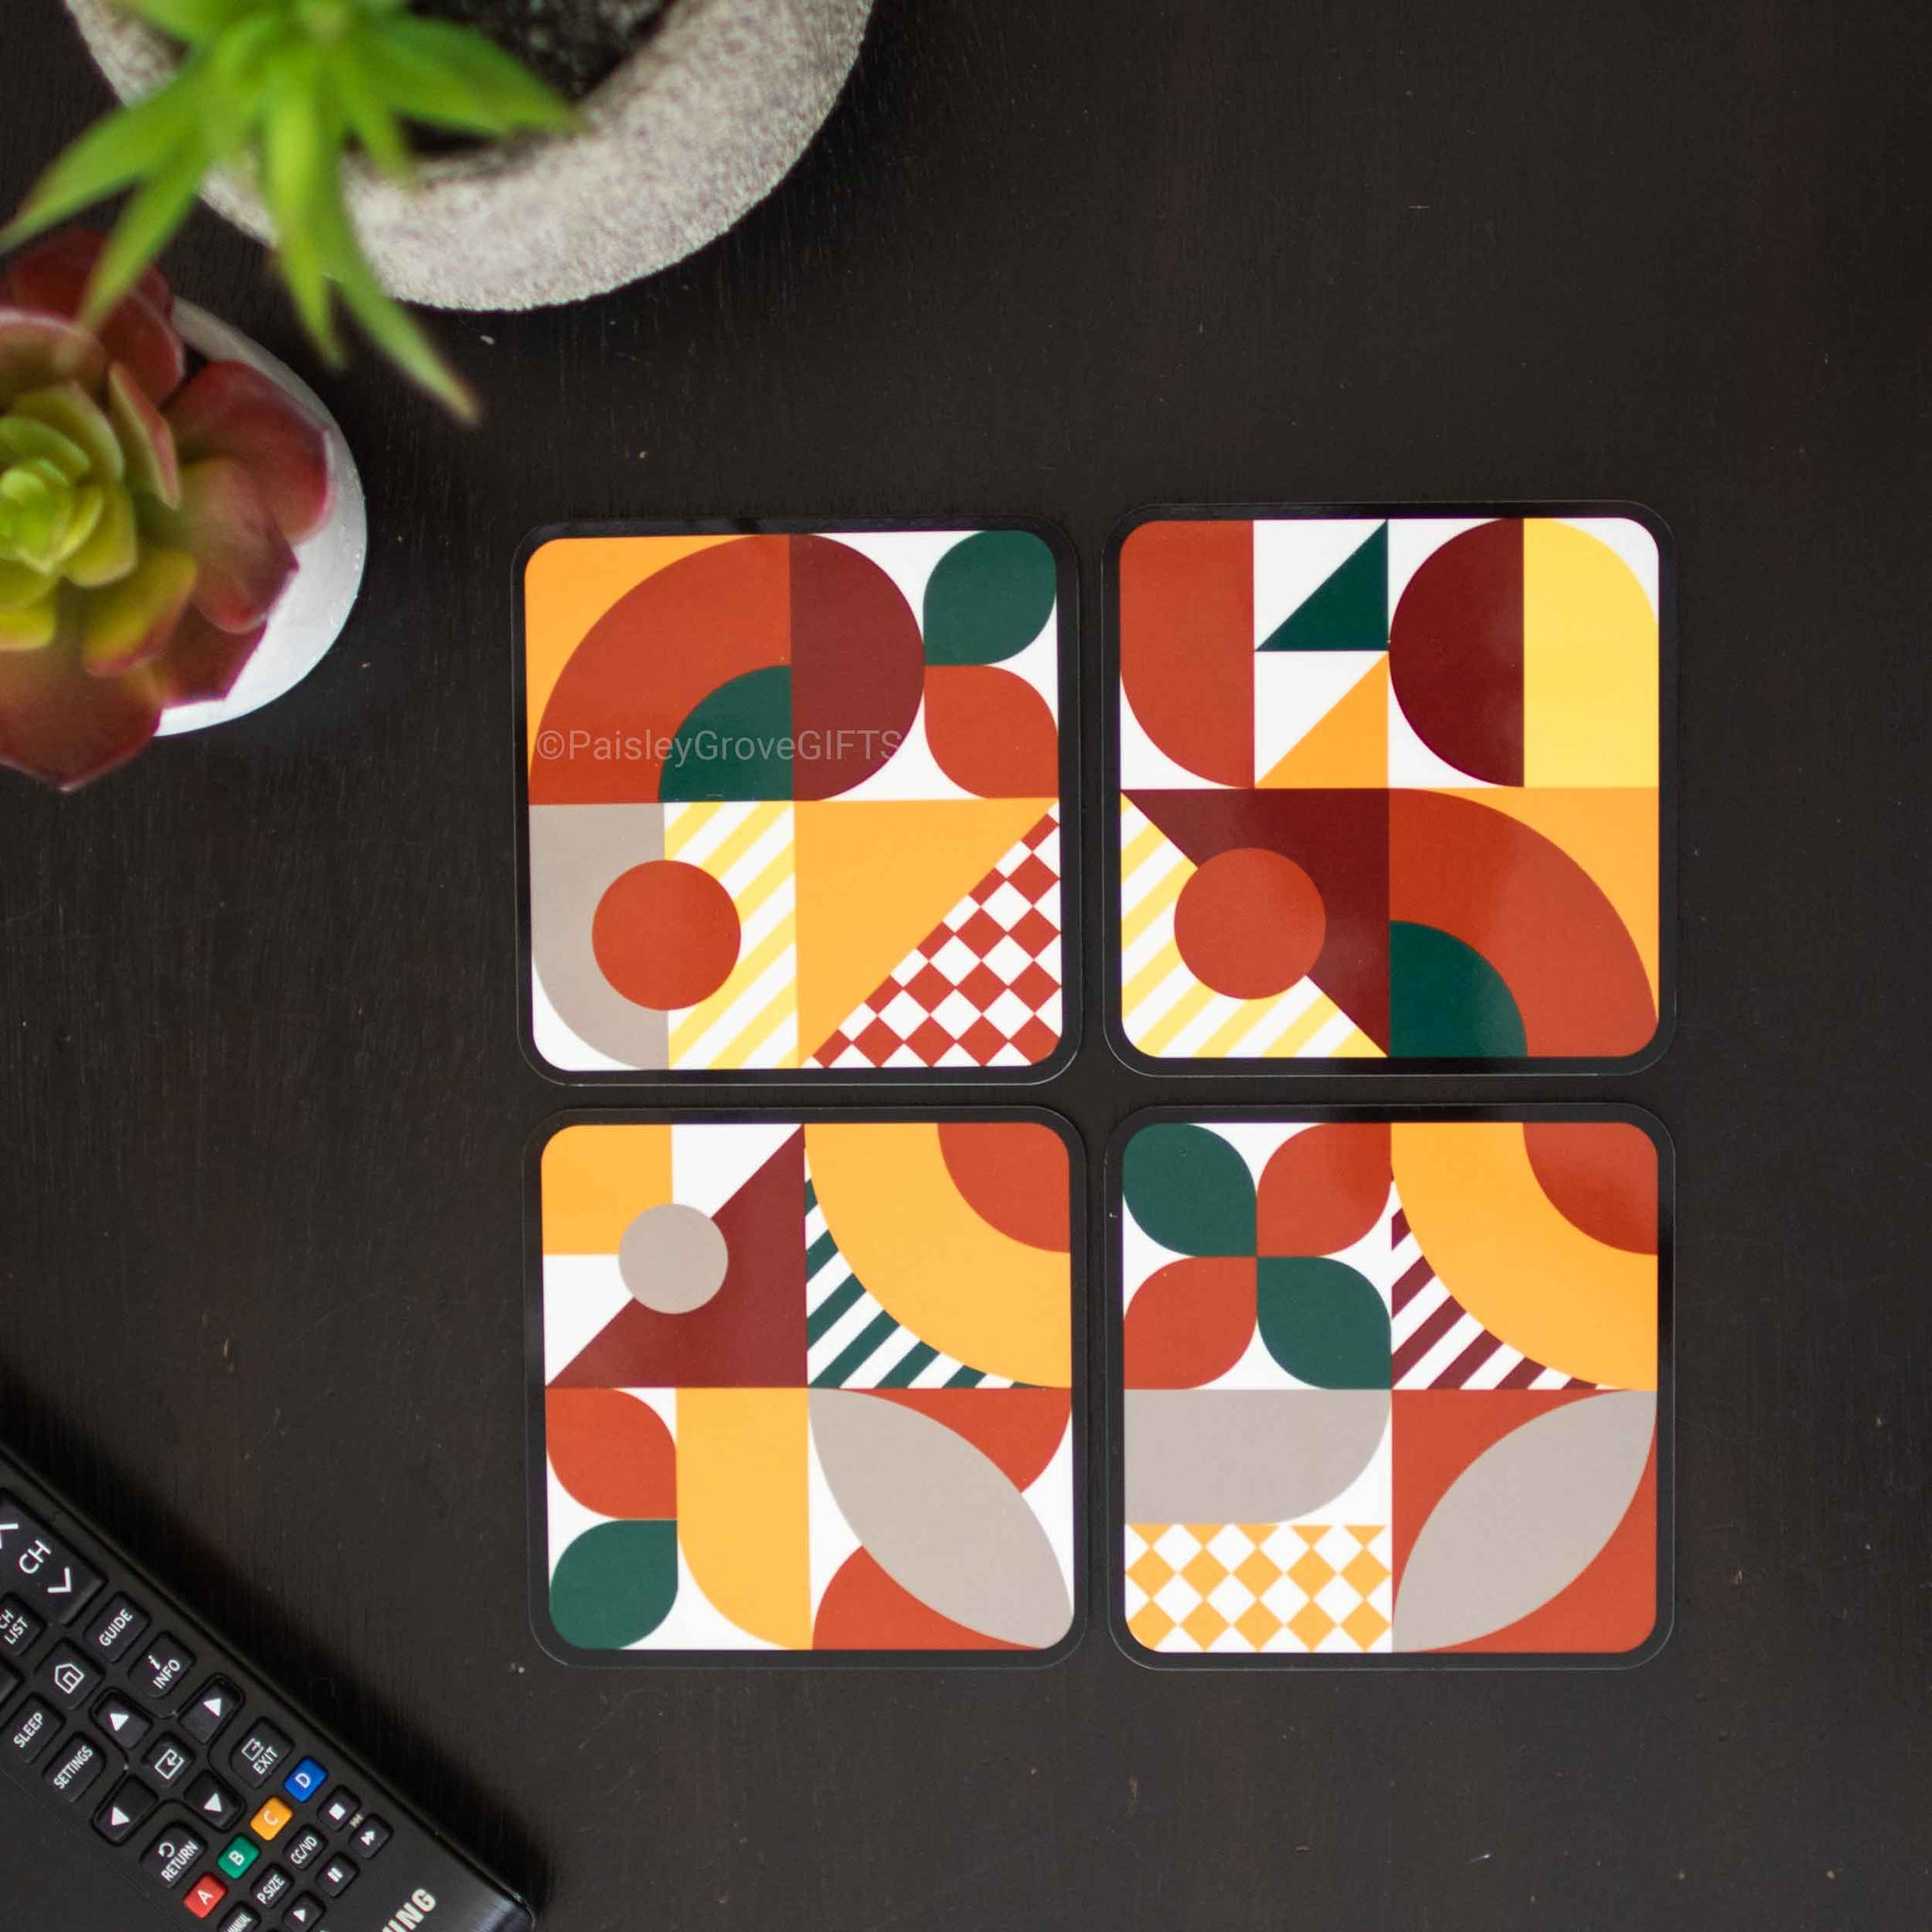 CopyrightPaisleyGroveGIFTS S701abcd Cork Coasters Table Protector Modern Maximalist Style Burnt Orange Mustard Yellow